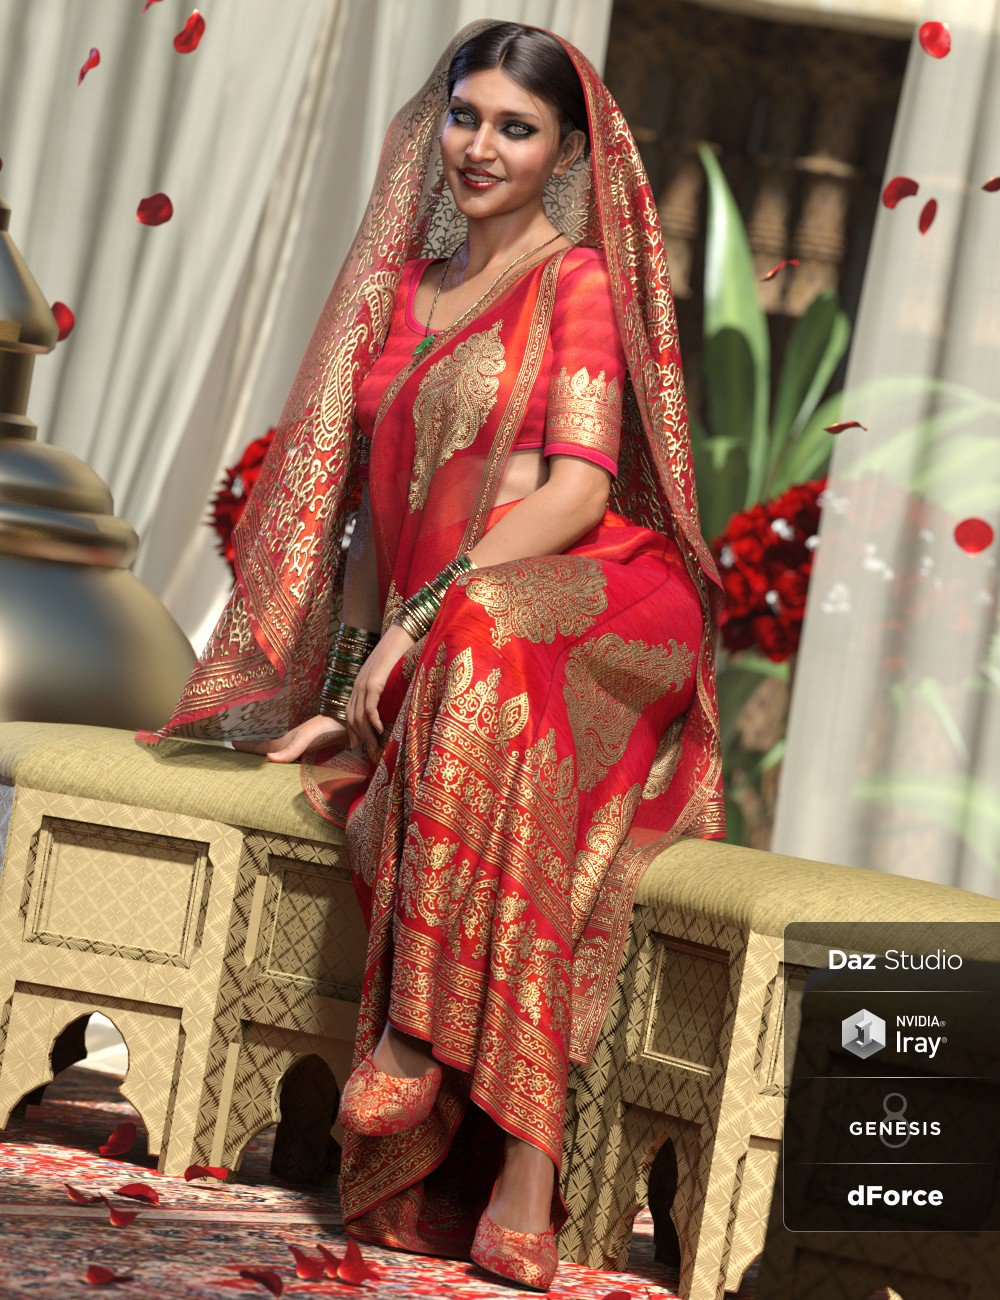 dForce Bollywood Bride for Genesis